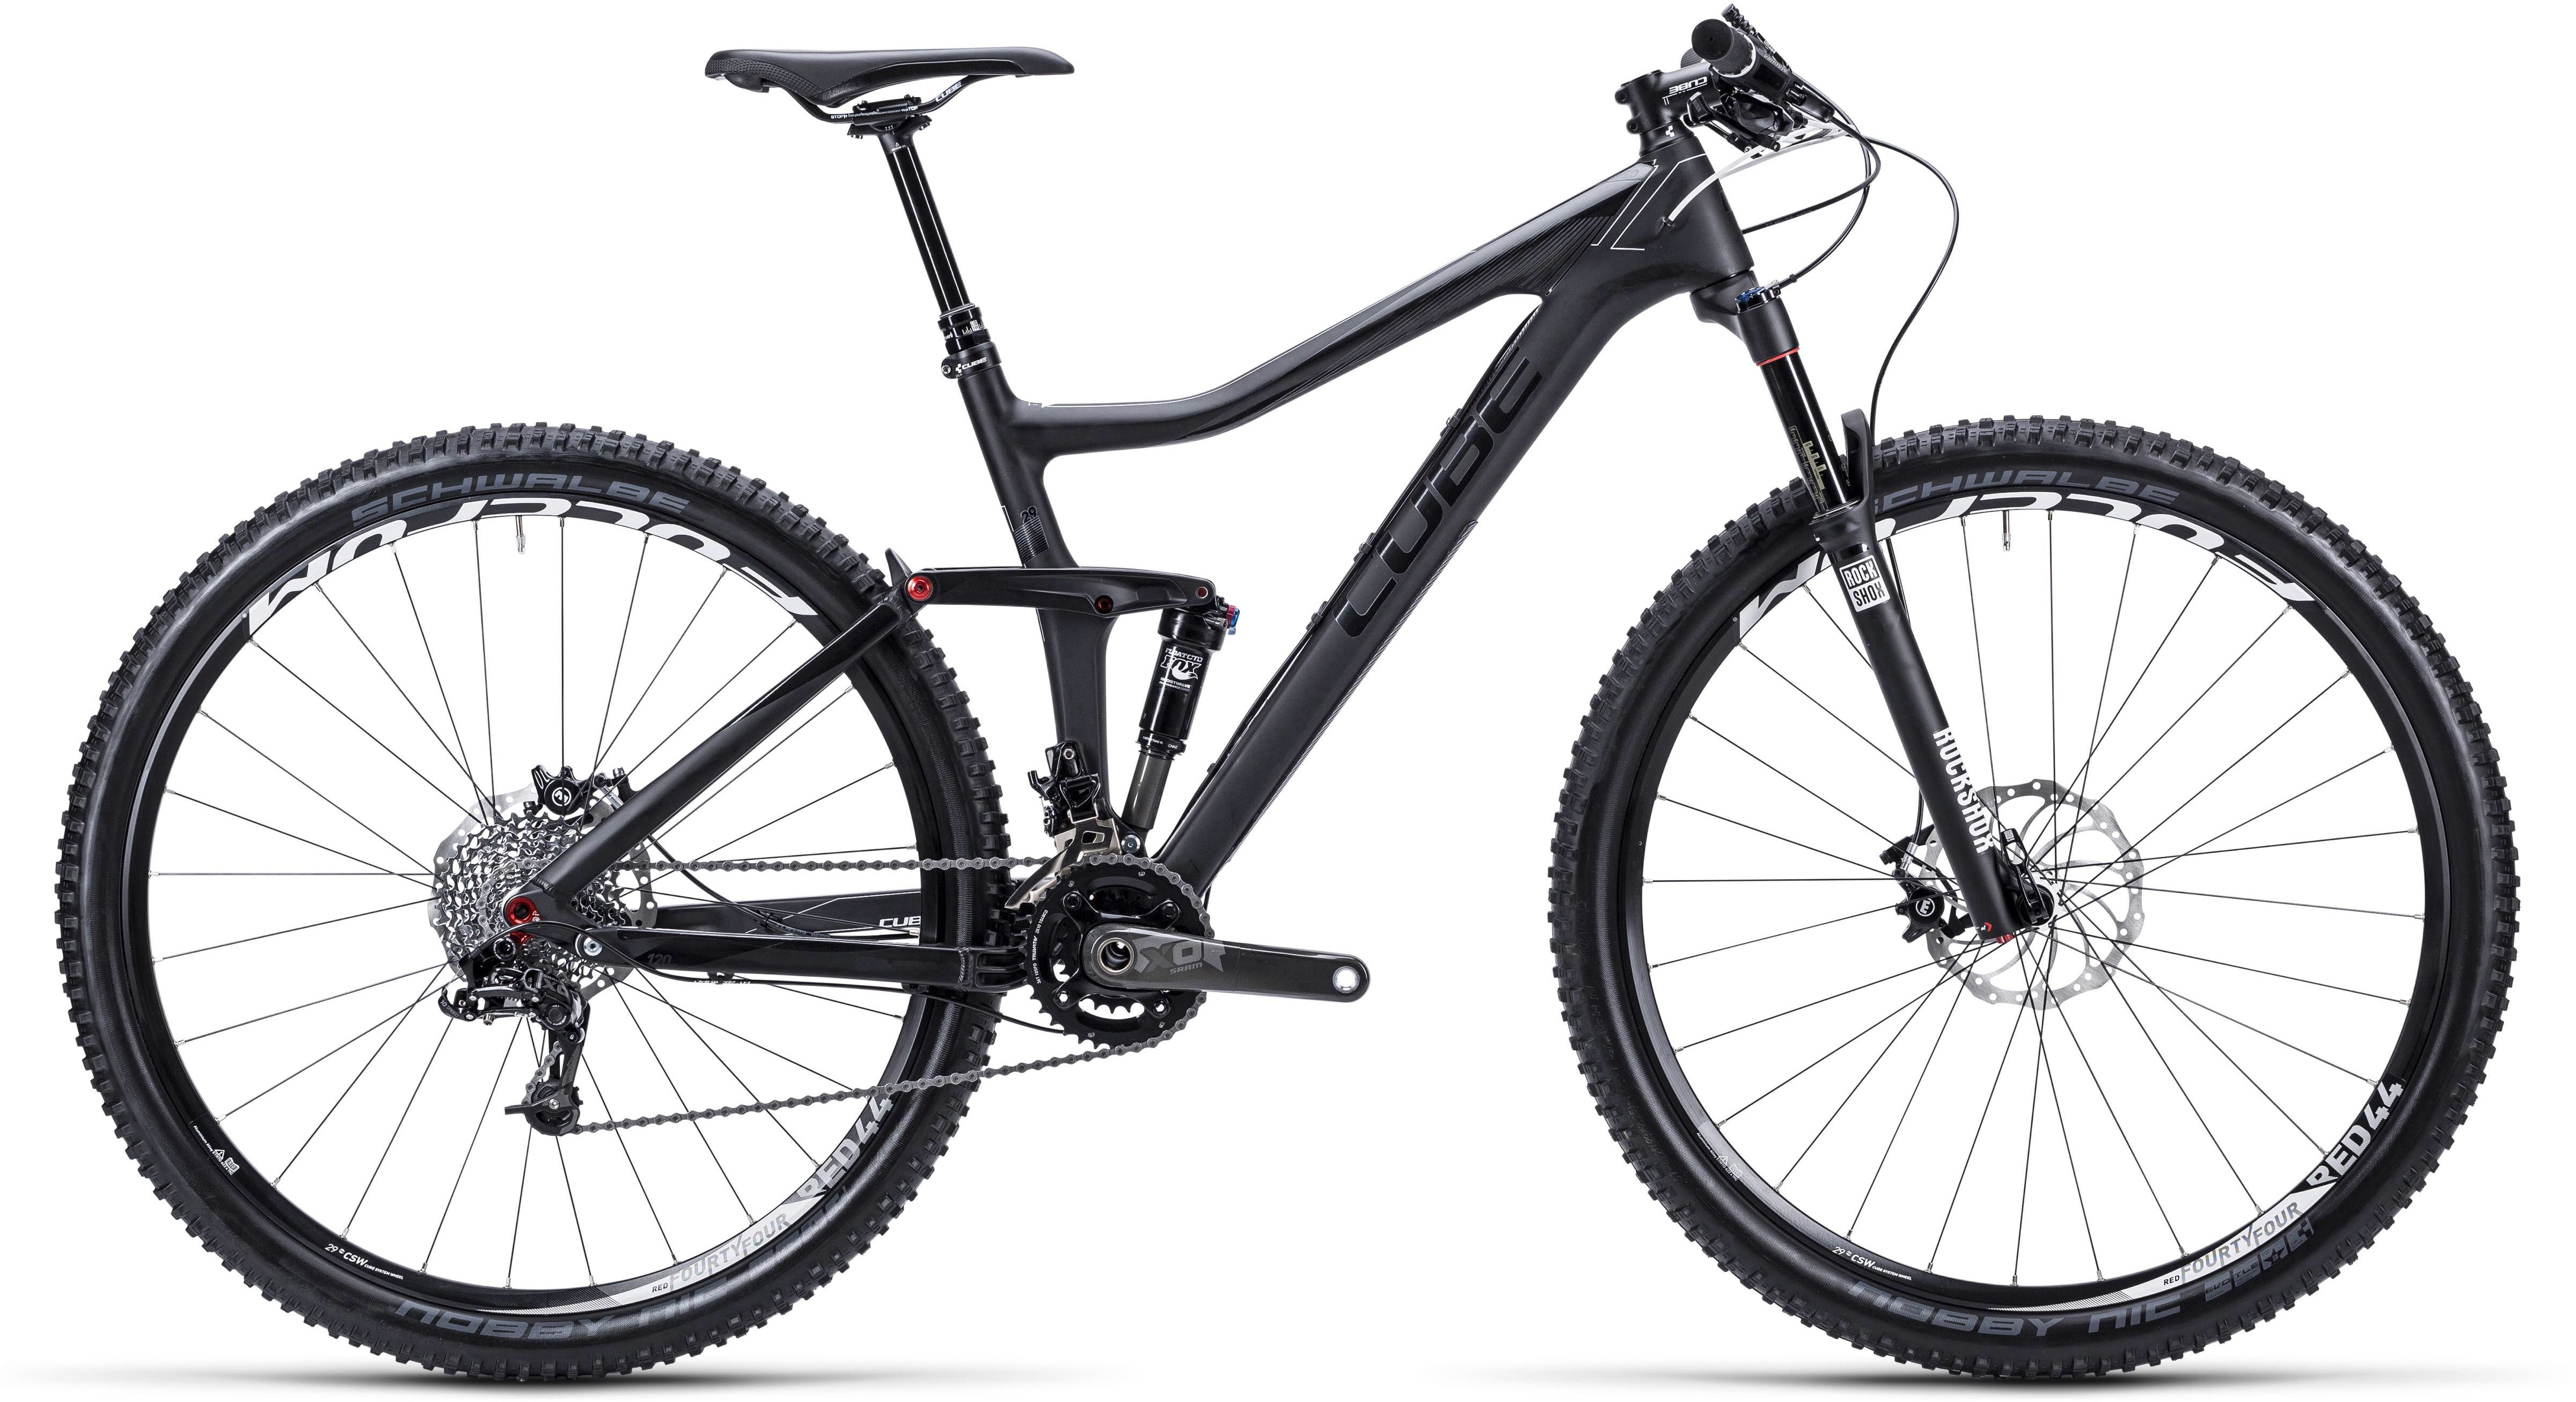 cube stereo 120 hpc race 29 2015 review the bike list. Black Bedroom Furniture Sets. Home Design Ideas